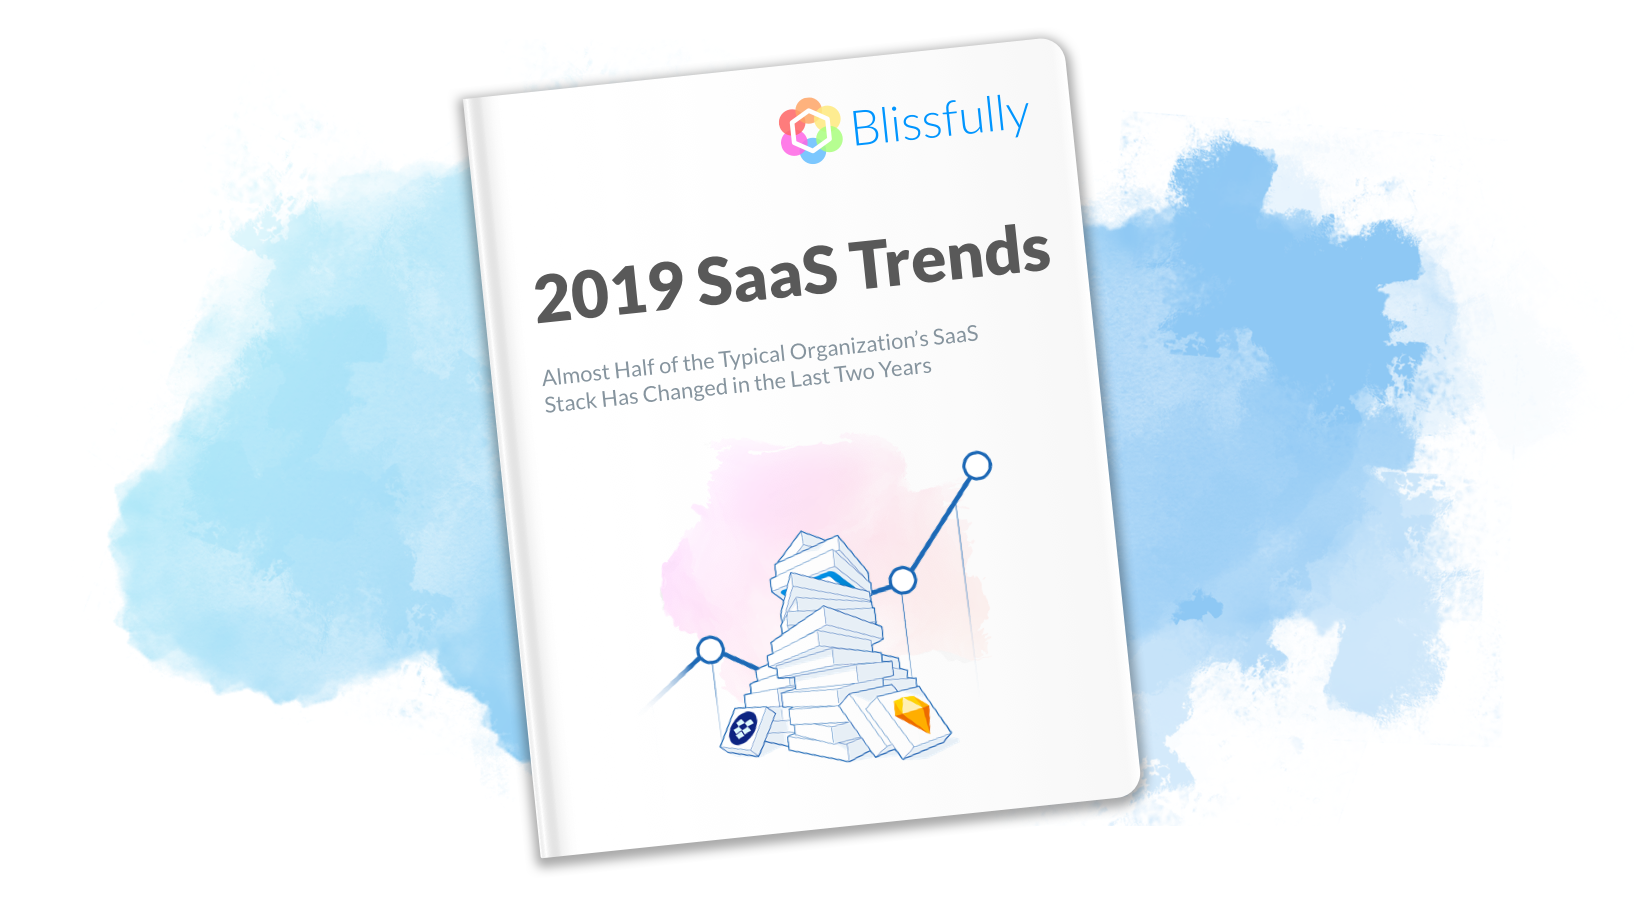 SaaS Trends Illustration